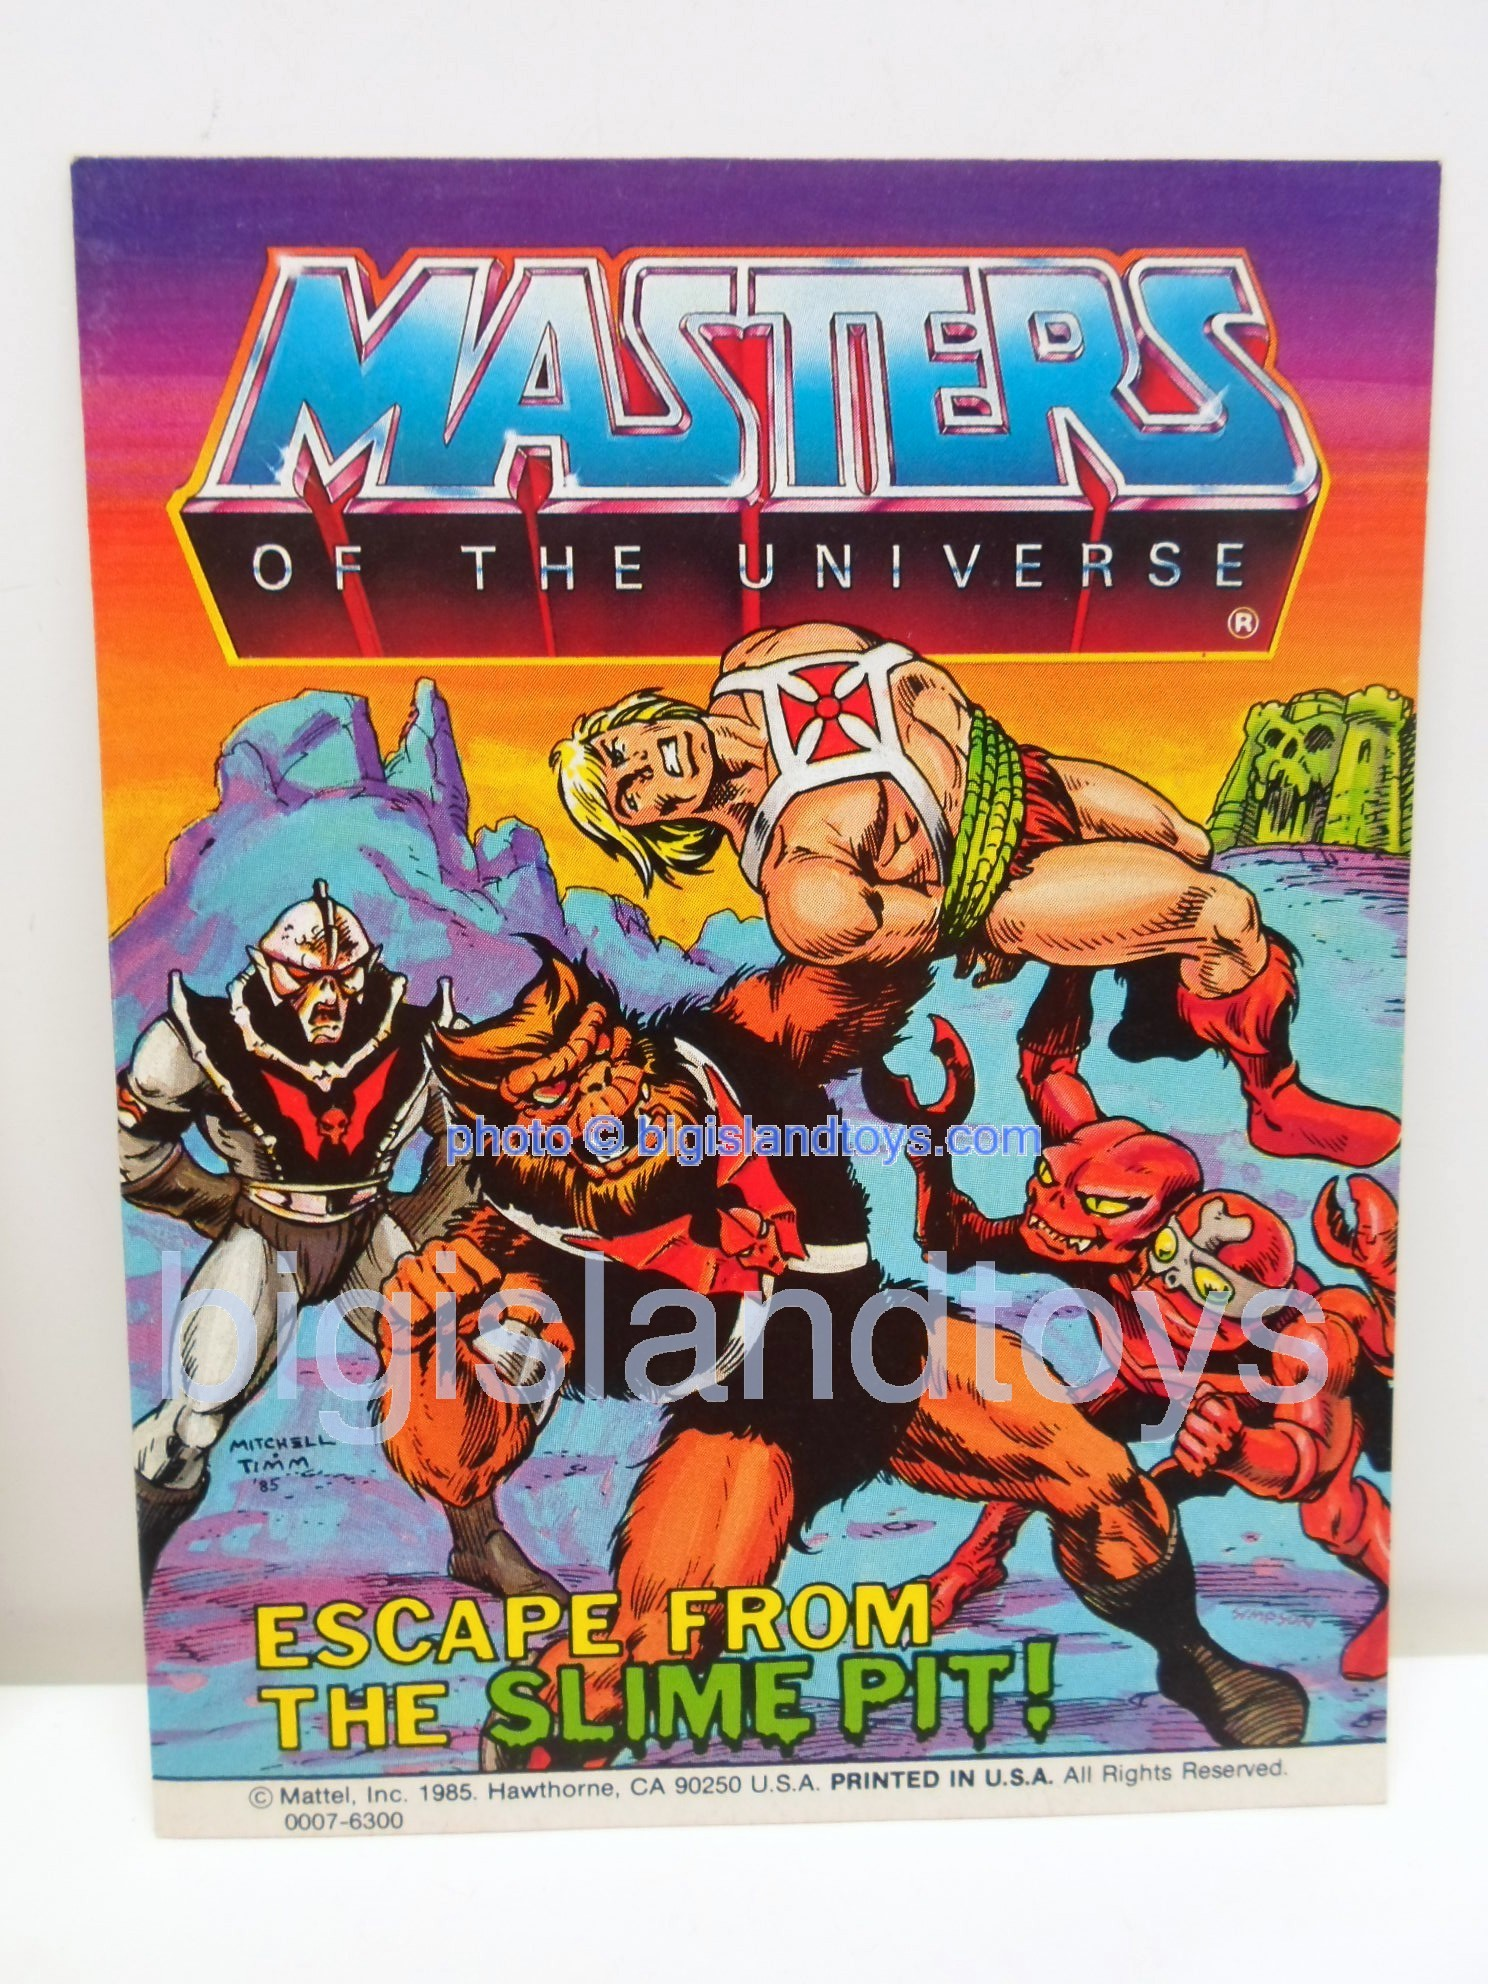 Masters of the Universe Mini Comics   Escape from the Slime Pit!